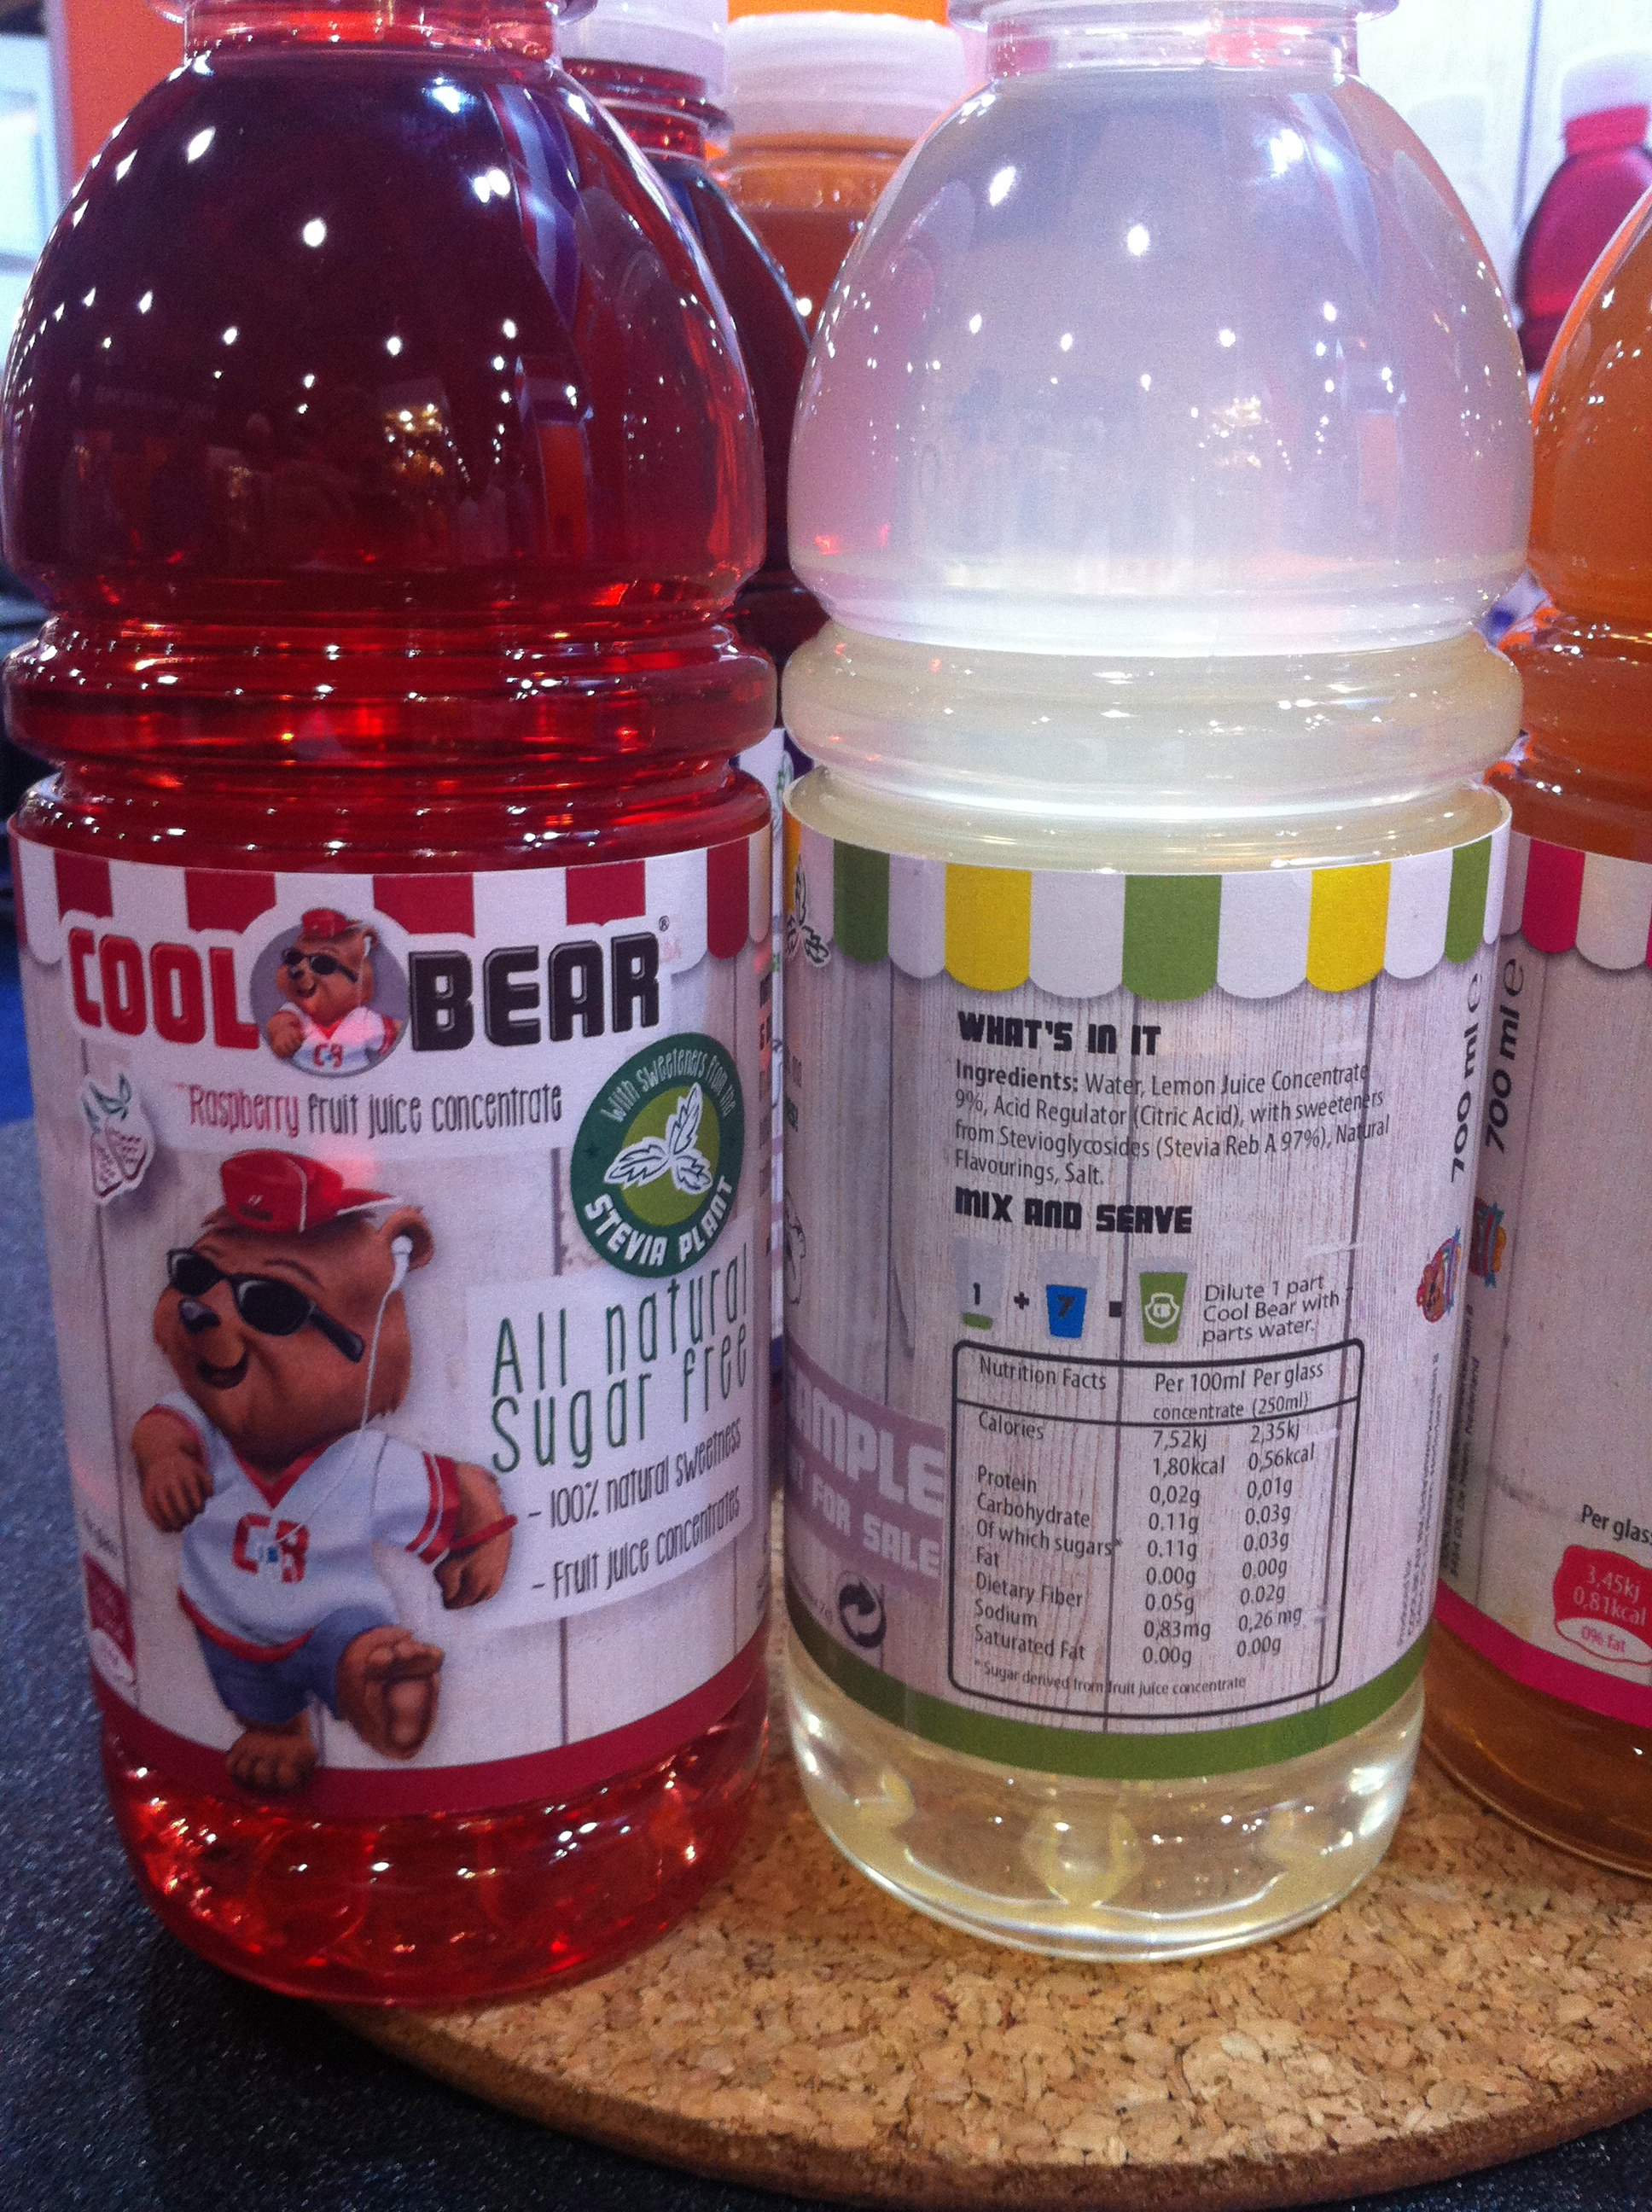 Cool bear naturally sweetened flavoured waters for kids